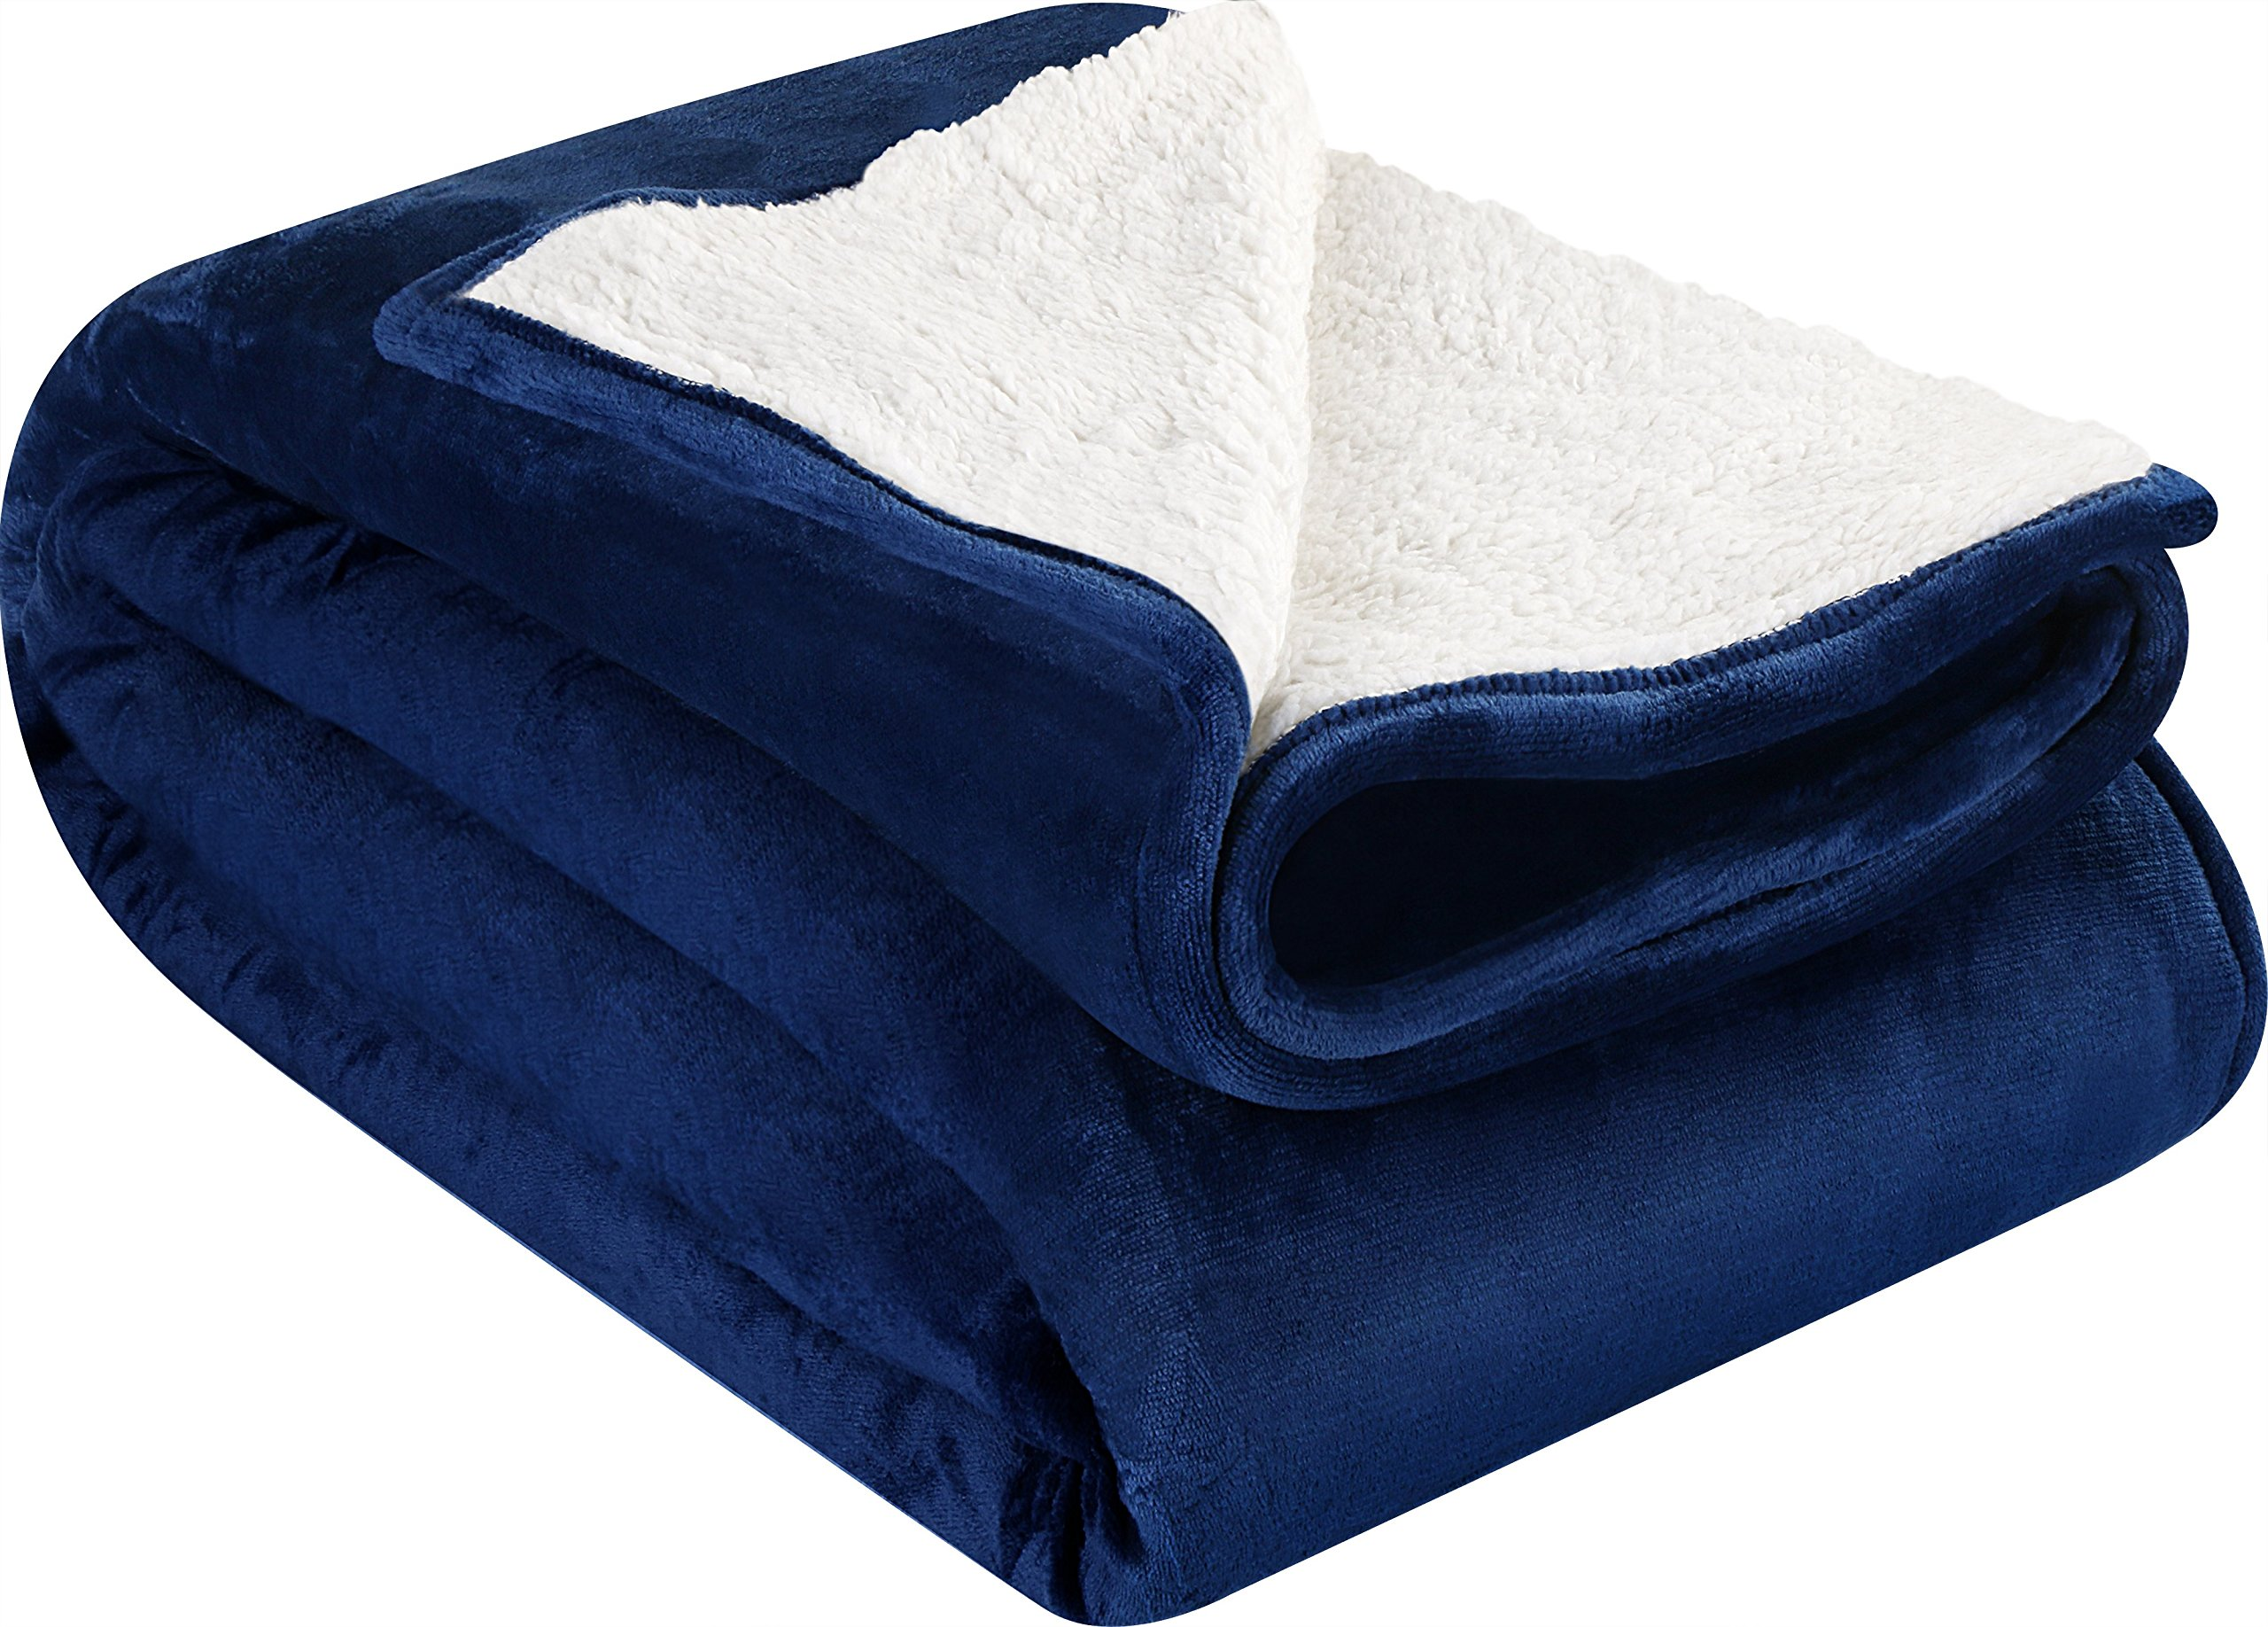 Utopia Bedding Sherpa Flannel Fleece Reversible Blankets (Navy, Twin) – Extra Soft Brush Fabric – Super Warm, Lightweight Bed/Couch Blanket – Easy Care